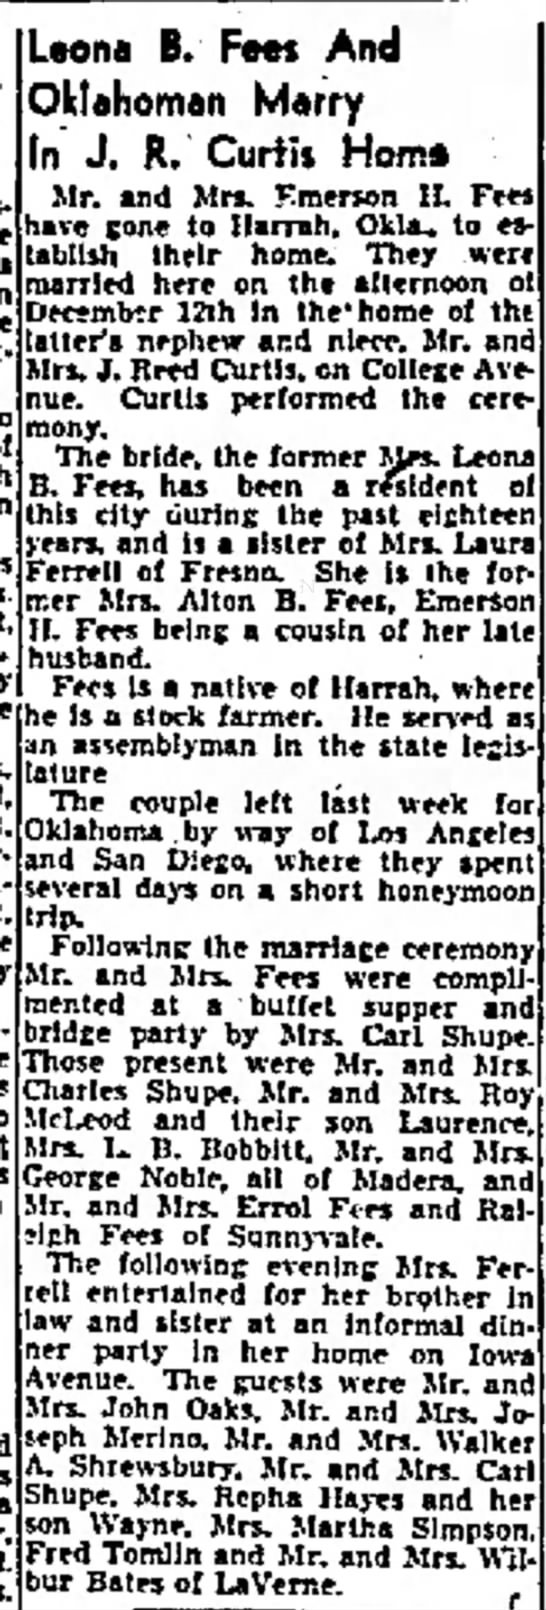 Lonni Ferrell Fees, widow, marries Emerson Fees - who of who! had Mrs. Leona B. Fees And...